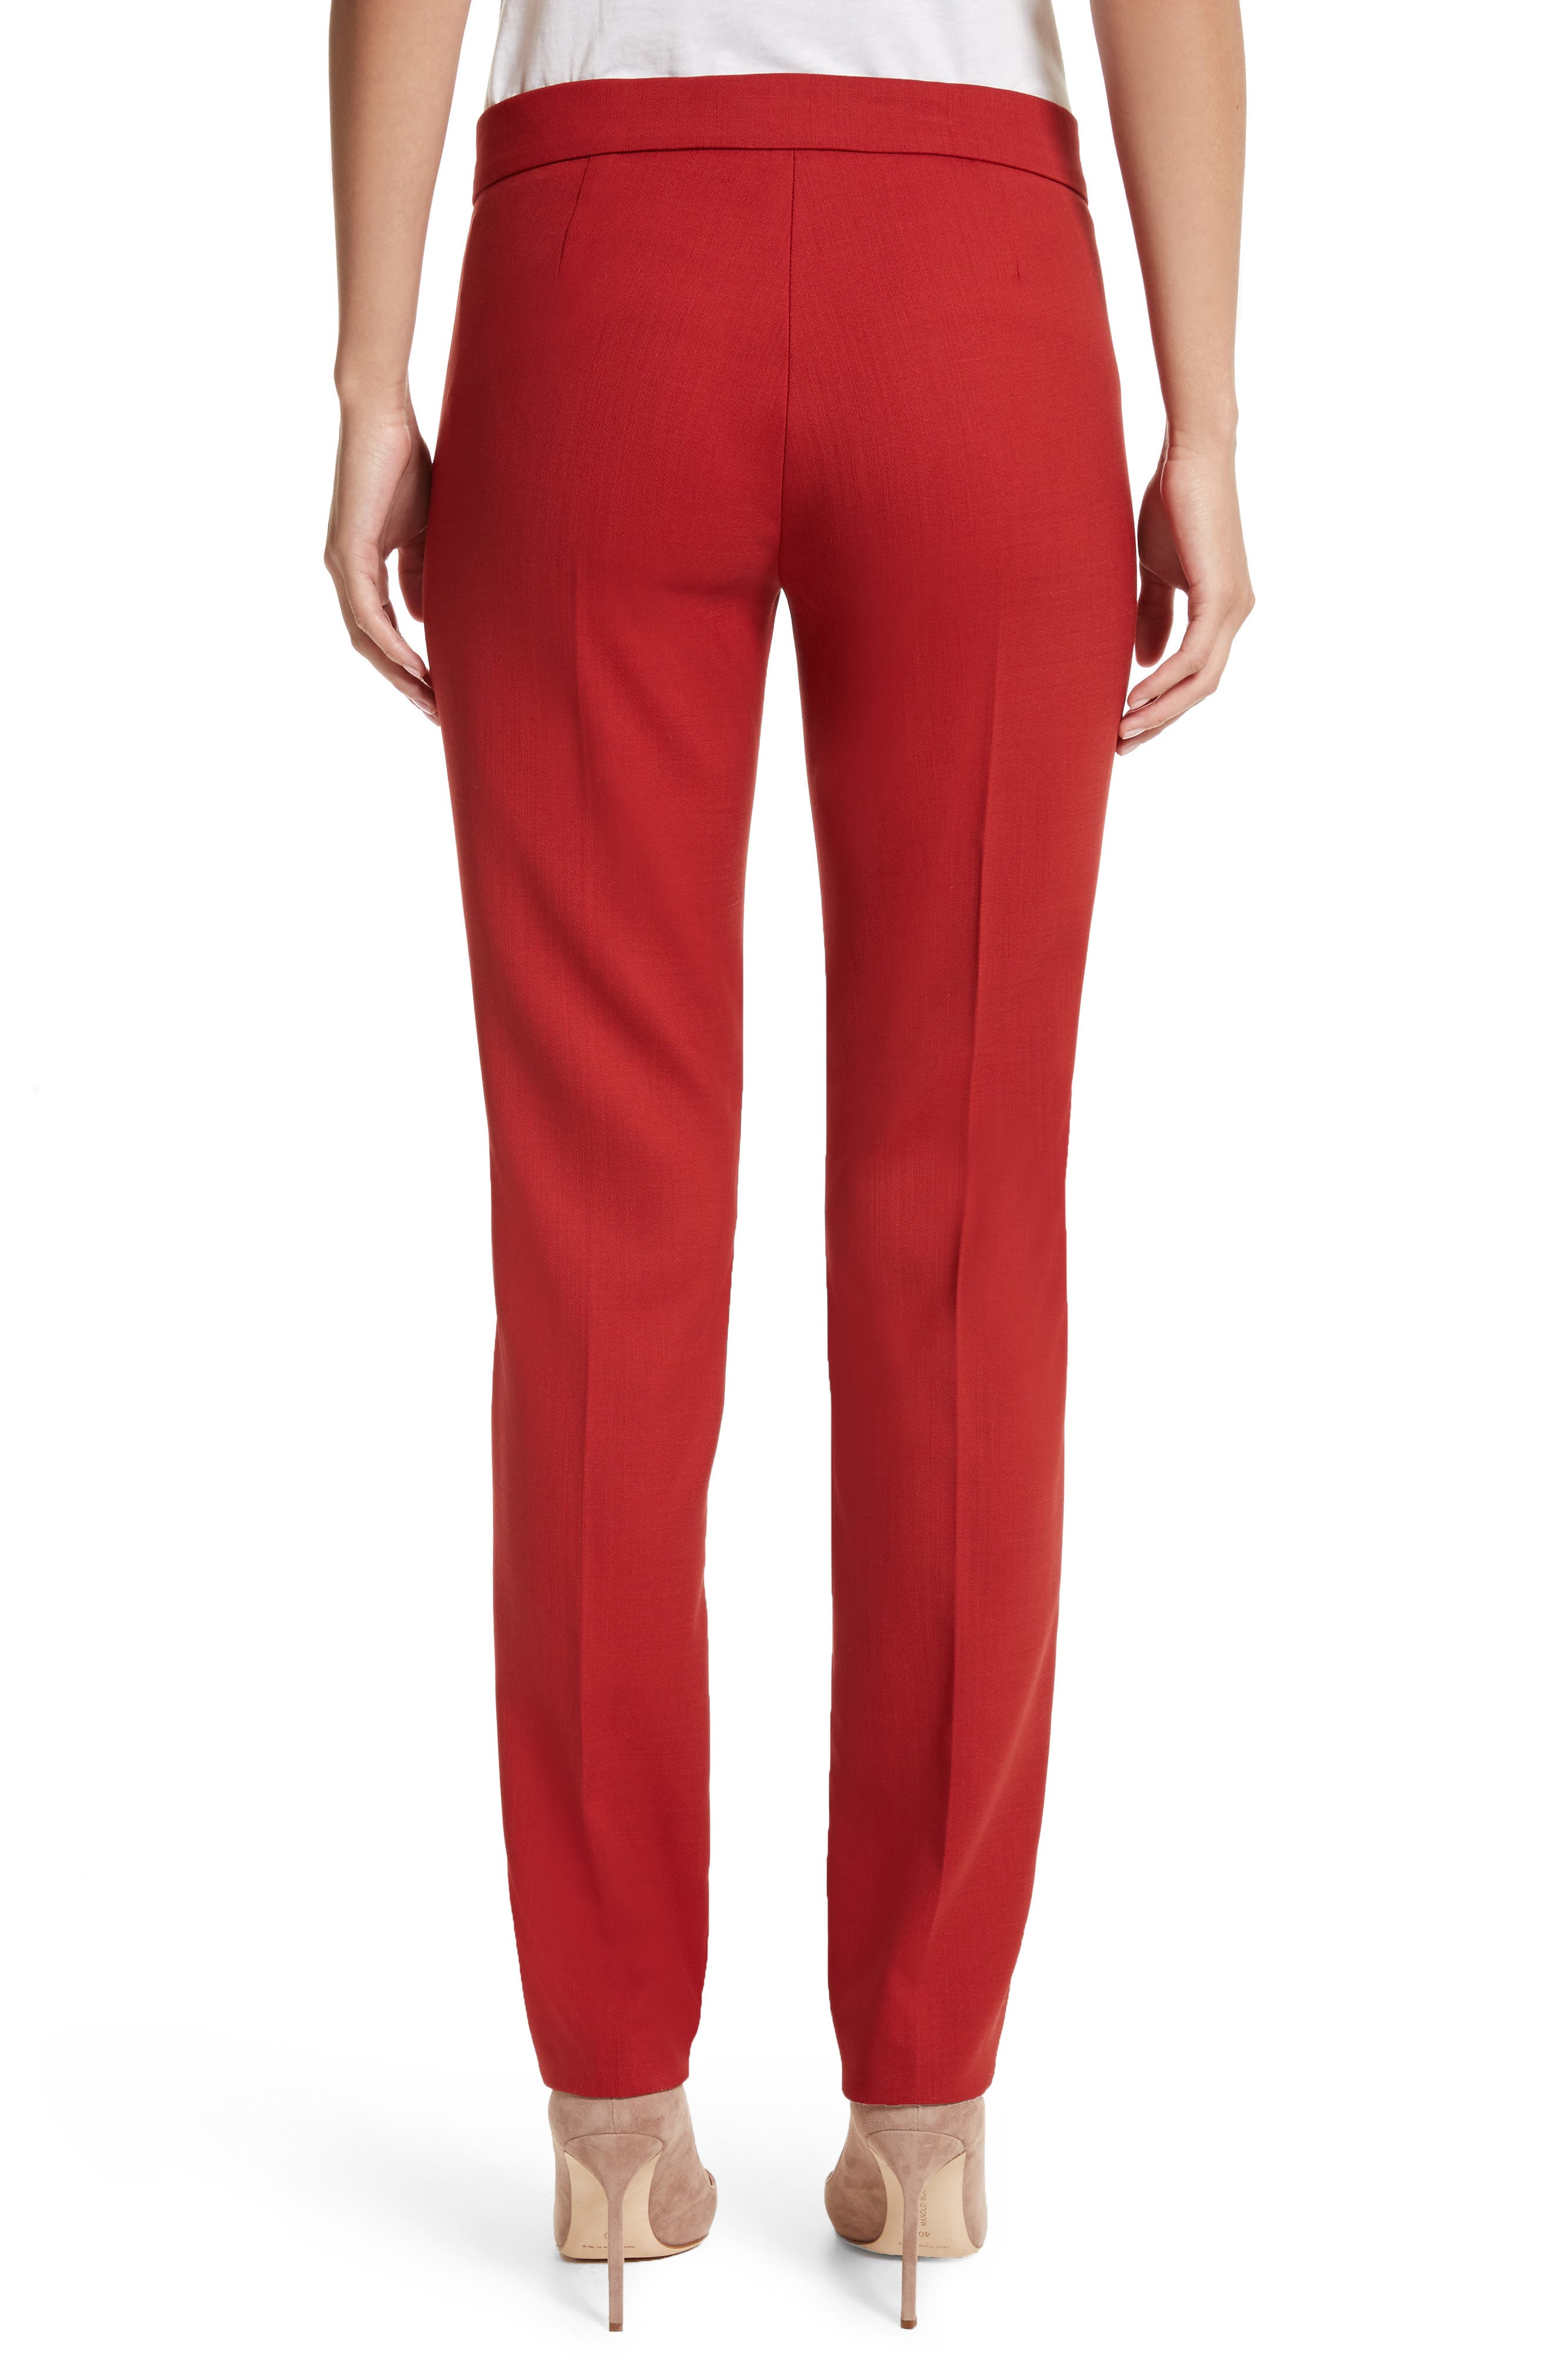 Oscuro Stretch Wool Pants,                             Alternate thumbnail 2, color,                             614